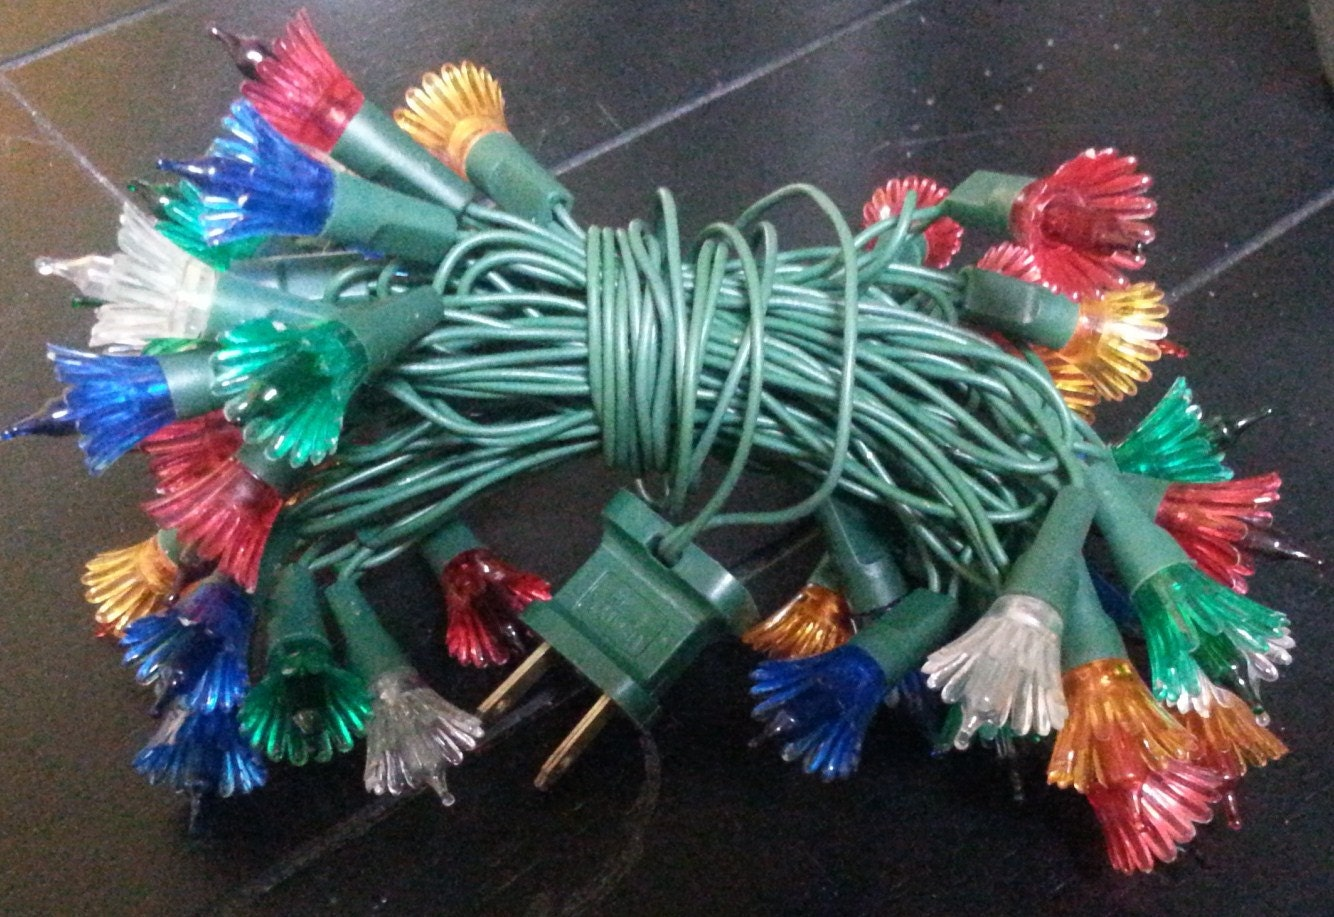 Vintage 1960's or 1970's mini Christmas tree lights